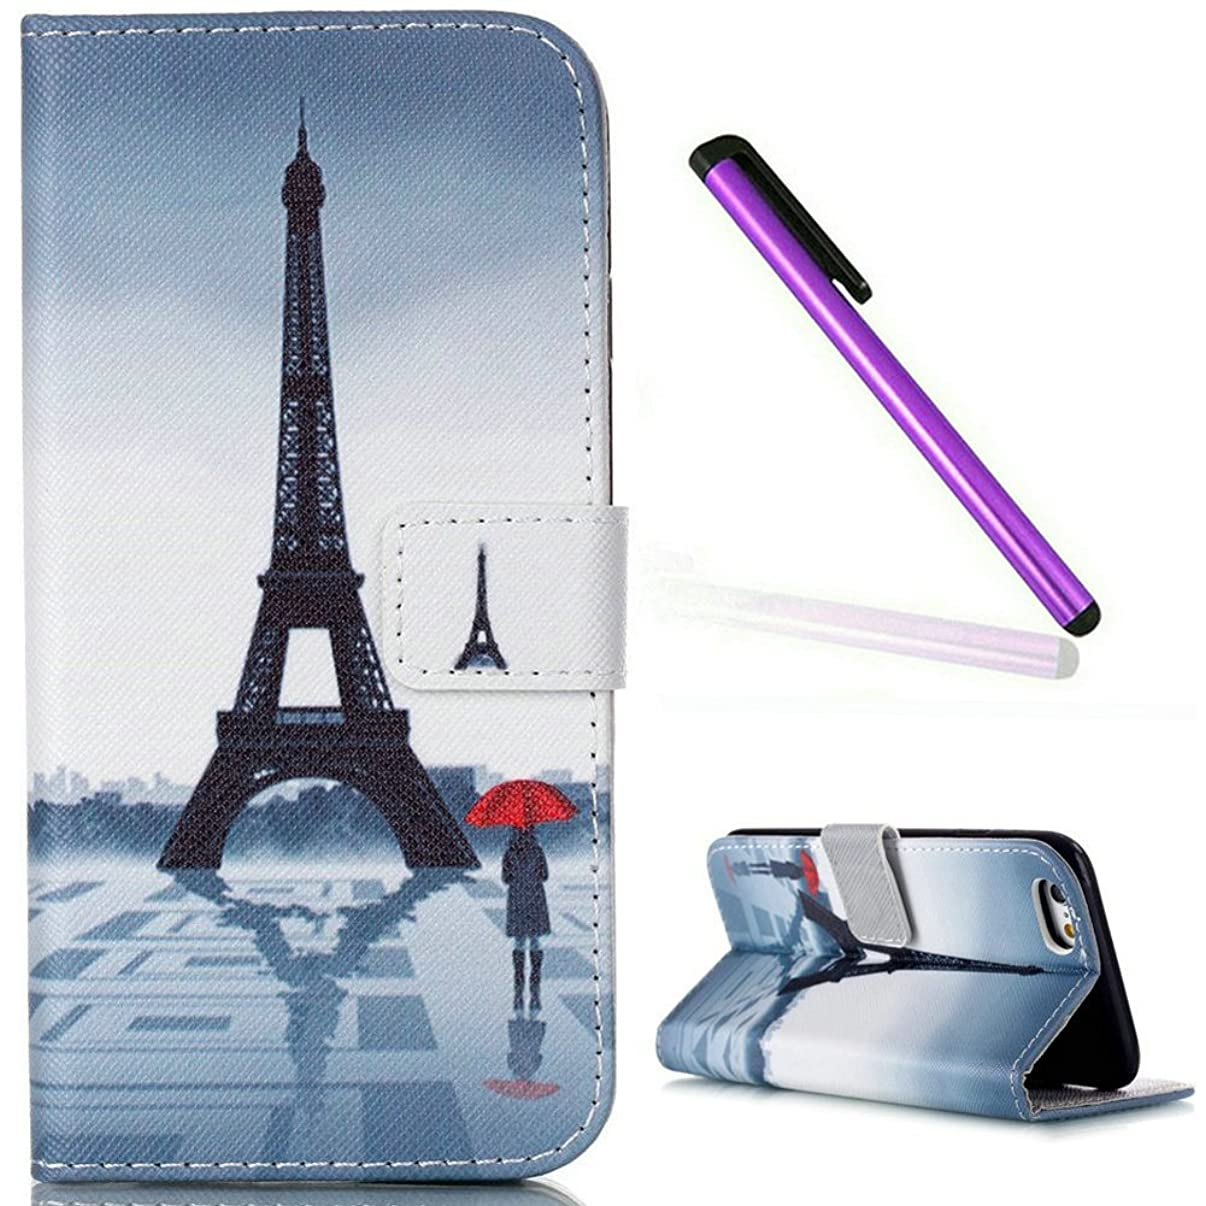 iPhone 6S Case,iPhone 6 Wallet Case,EMAXELER iPhone 6S Flip Folio Case,Beautiful illustration PU Leather Flip Protective Case Cover with Stand Wallet for Apple iPhone 6/6S-Tower & Red Umbrella Girl